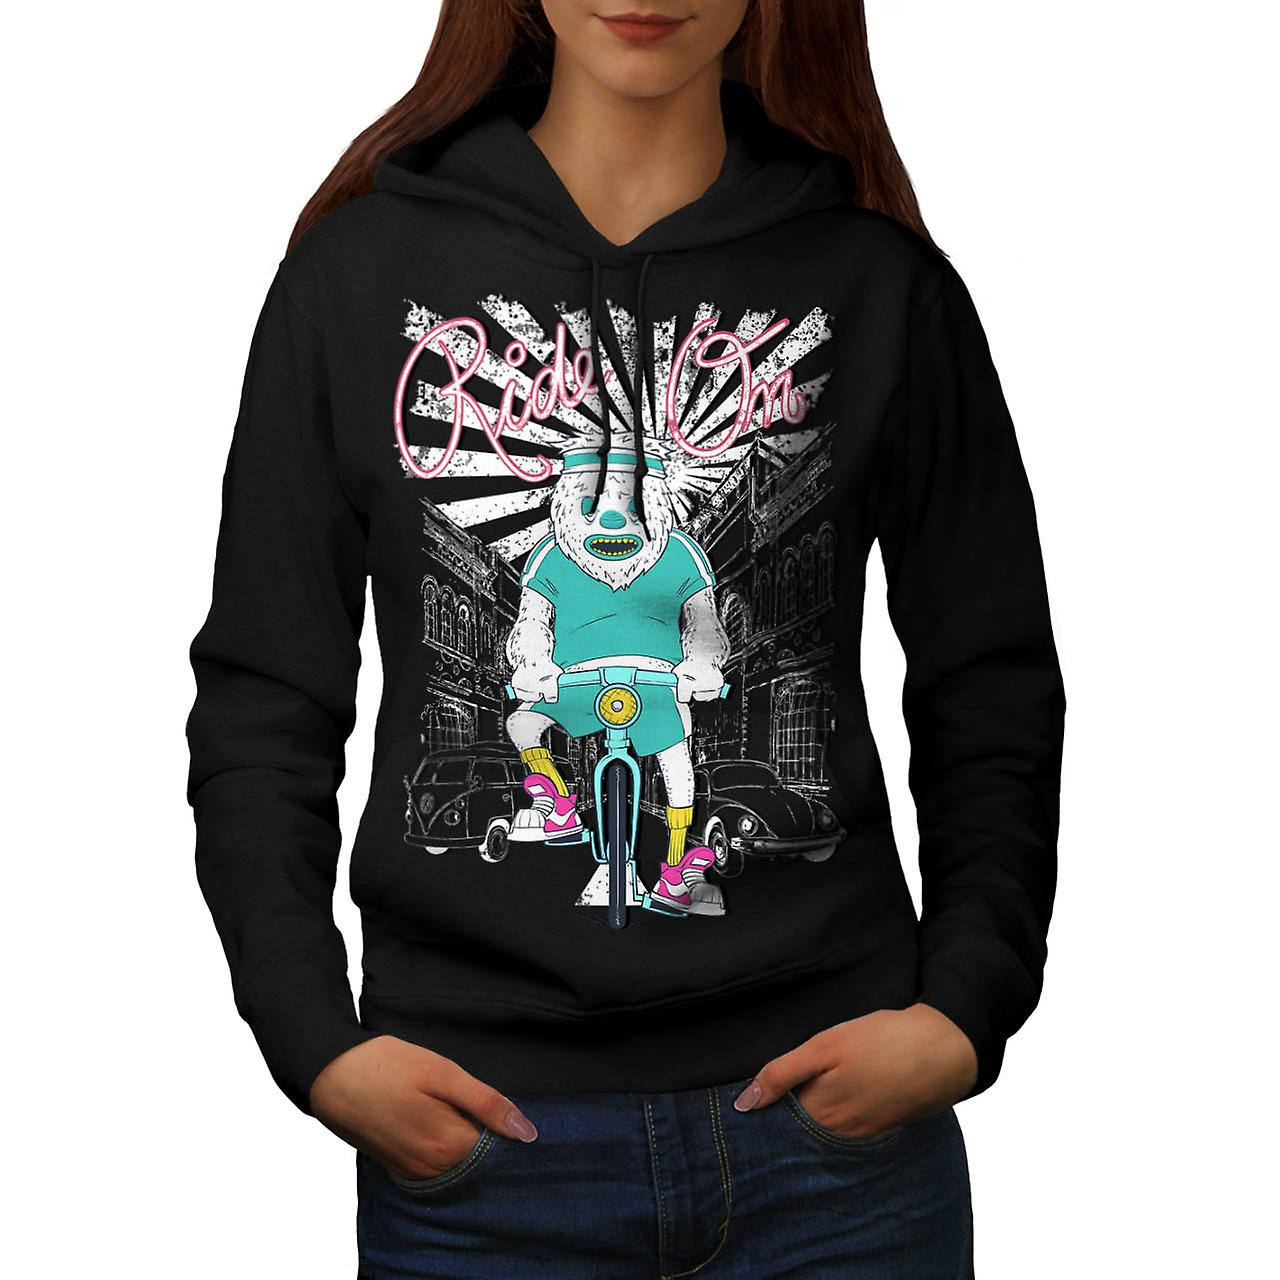 Ride sur Monster moto Cycle ville femme Black Hoodie | Wellcoda